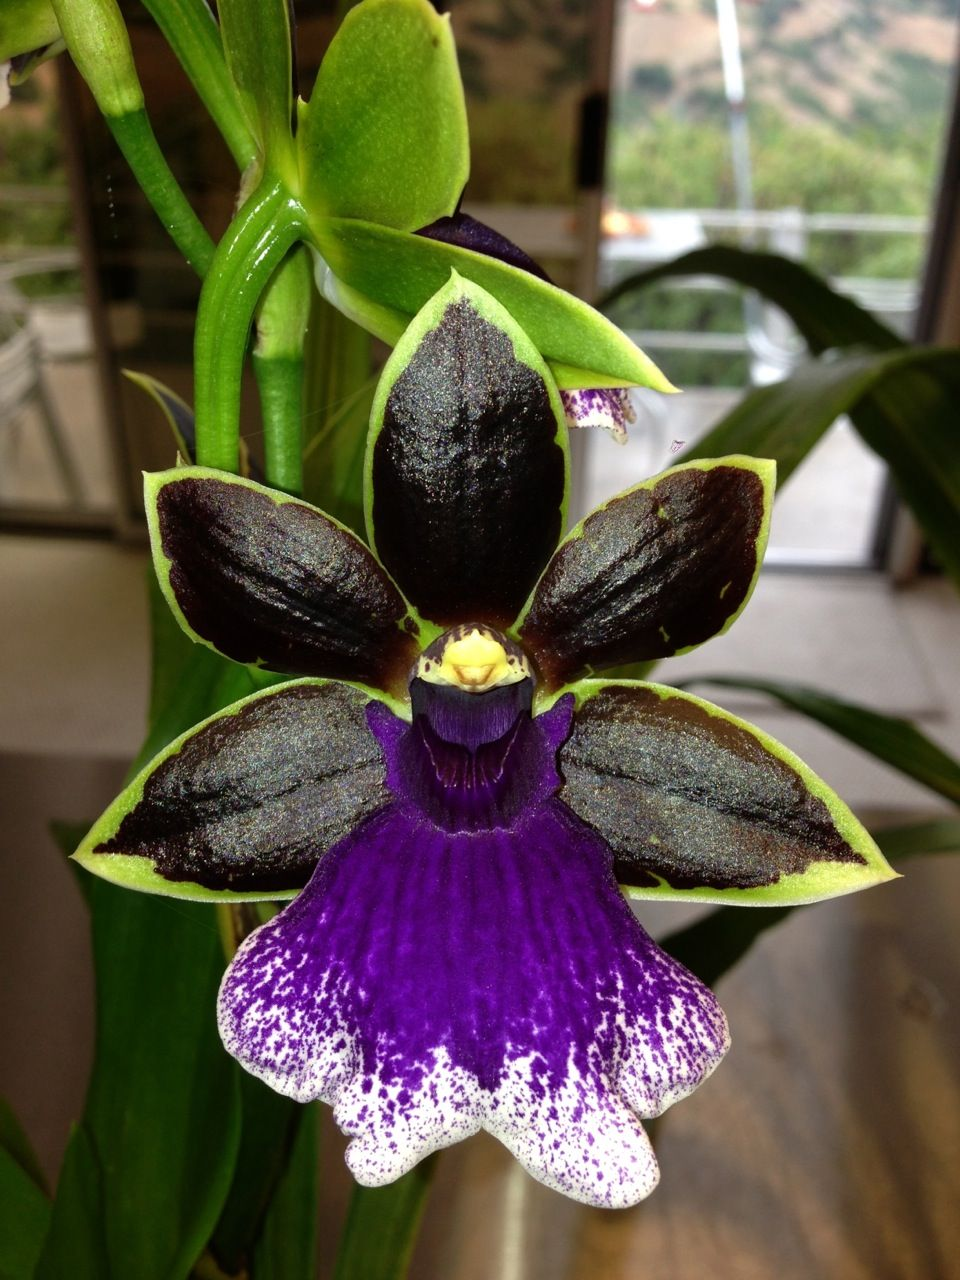 Zygopetalum Aussie Trance complete with black petals and